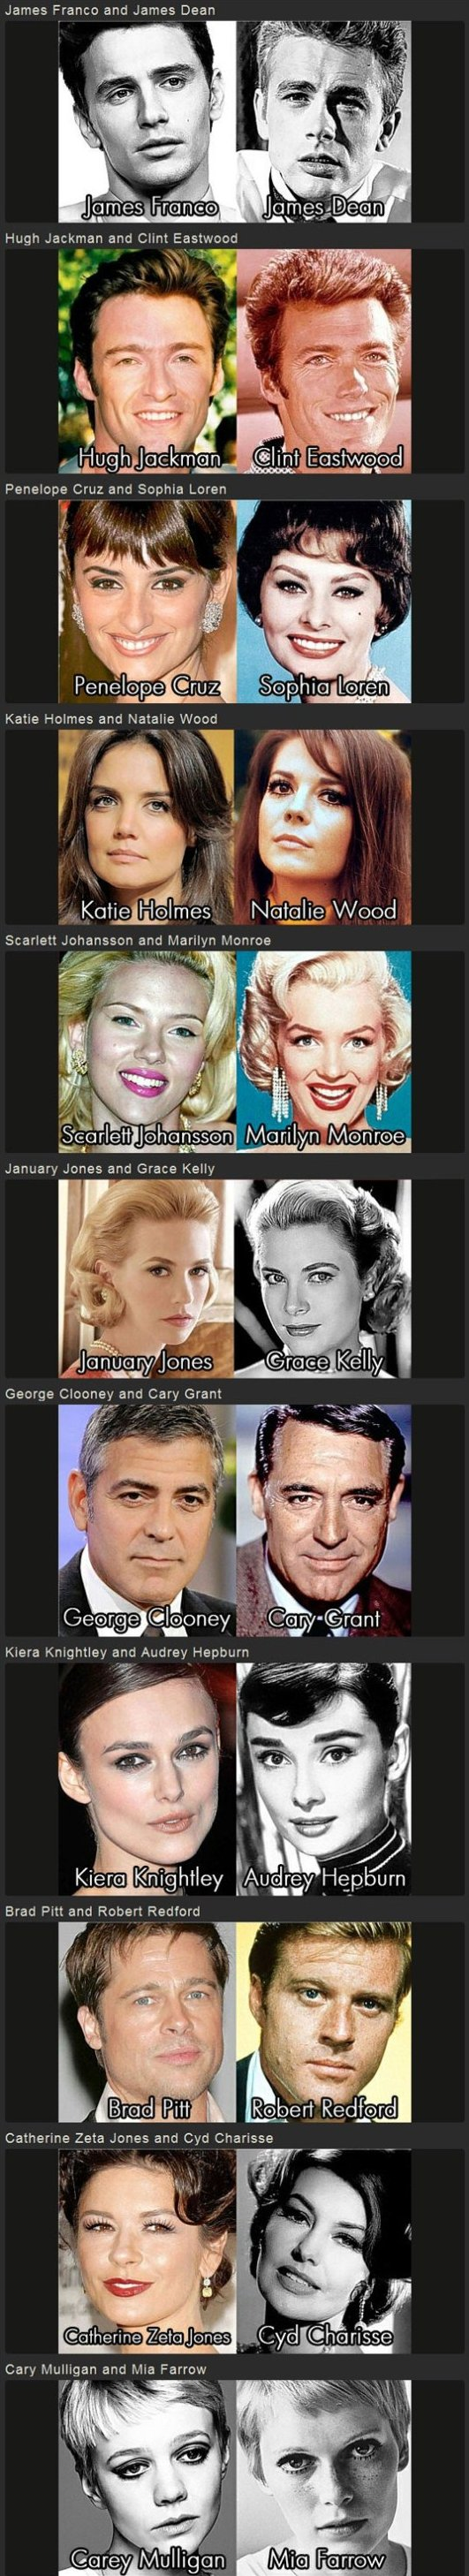 Movie stars and their classic film look a likes